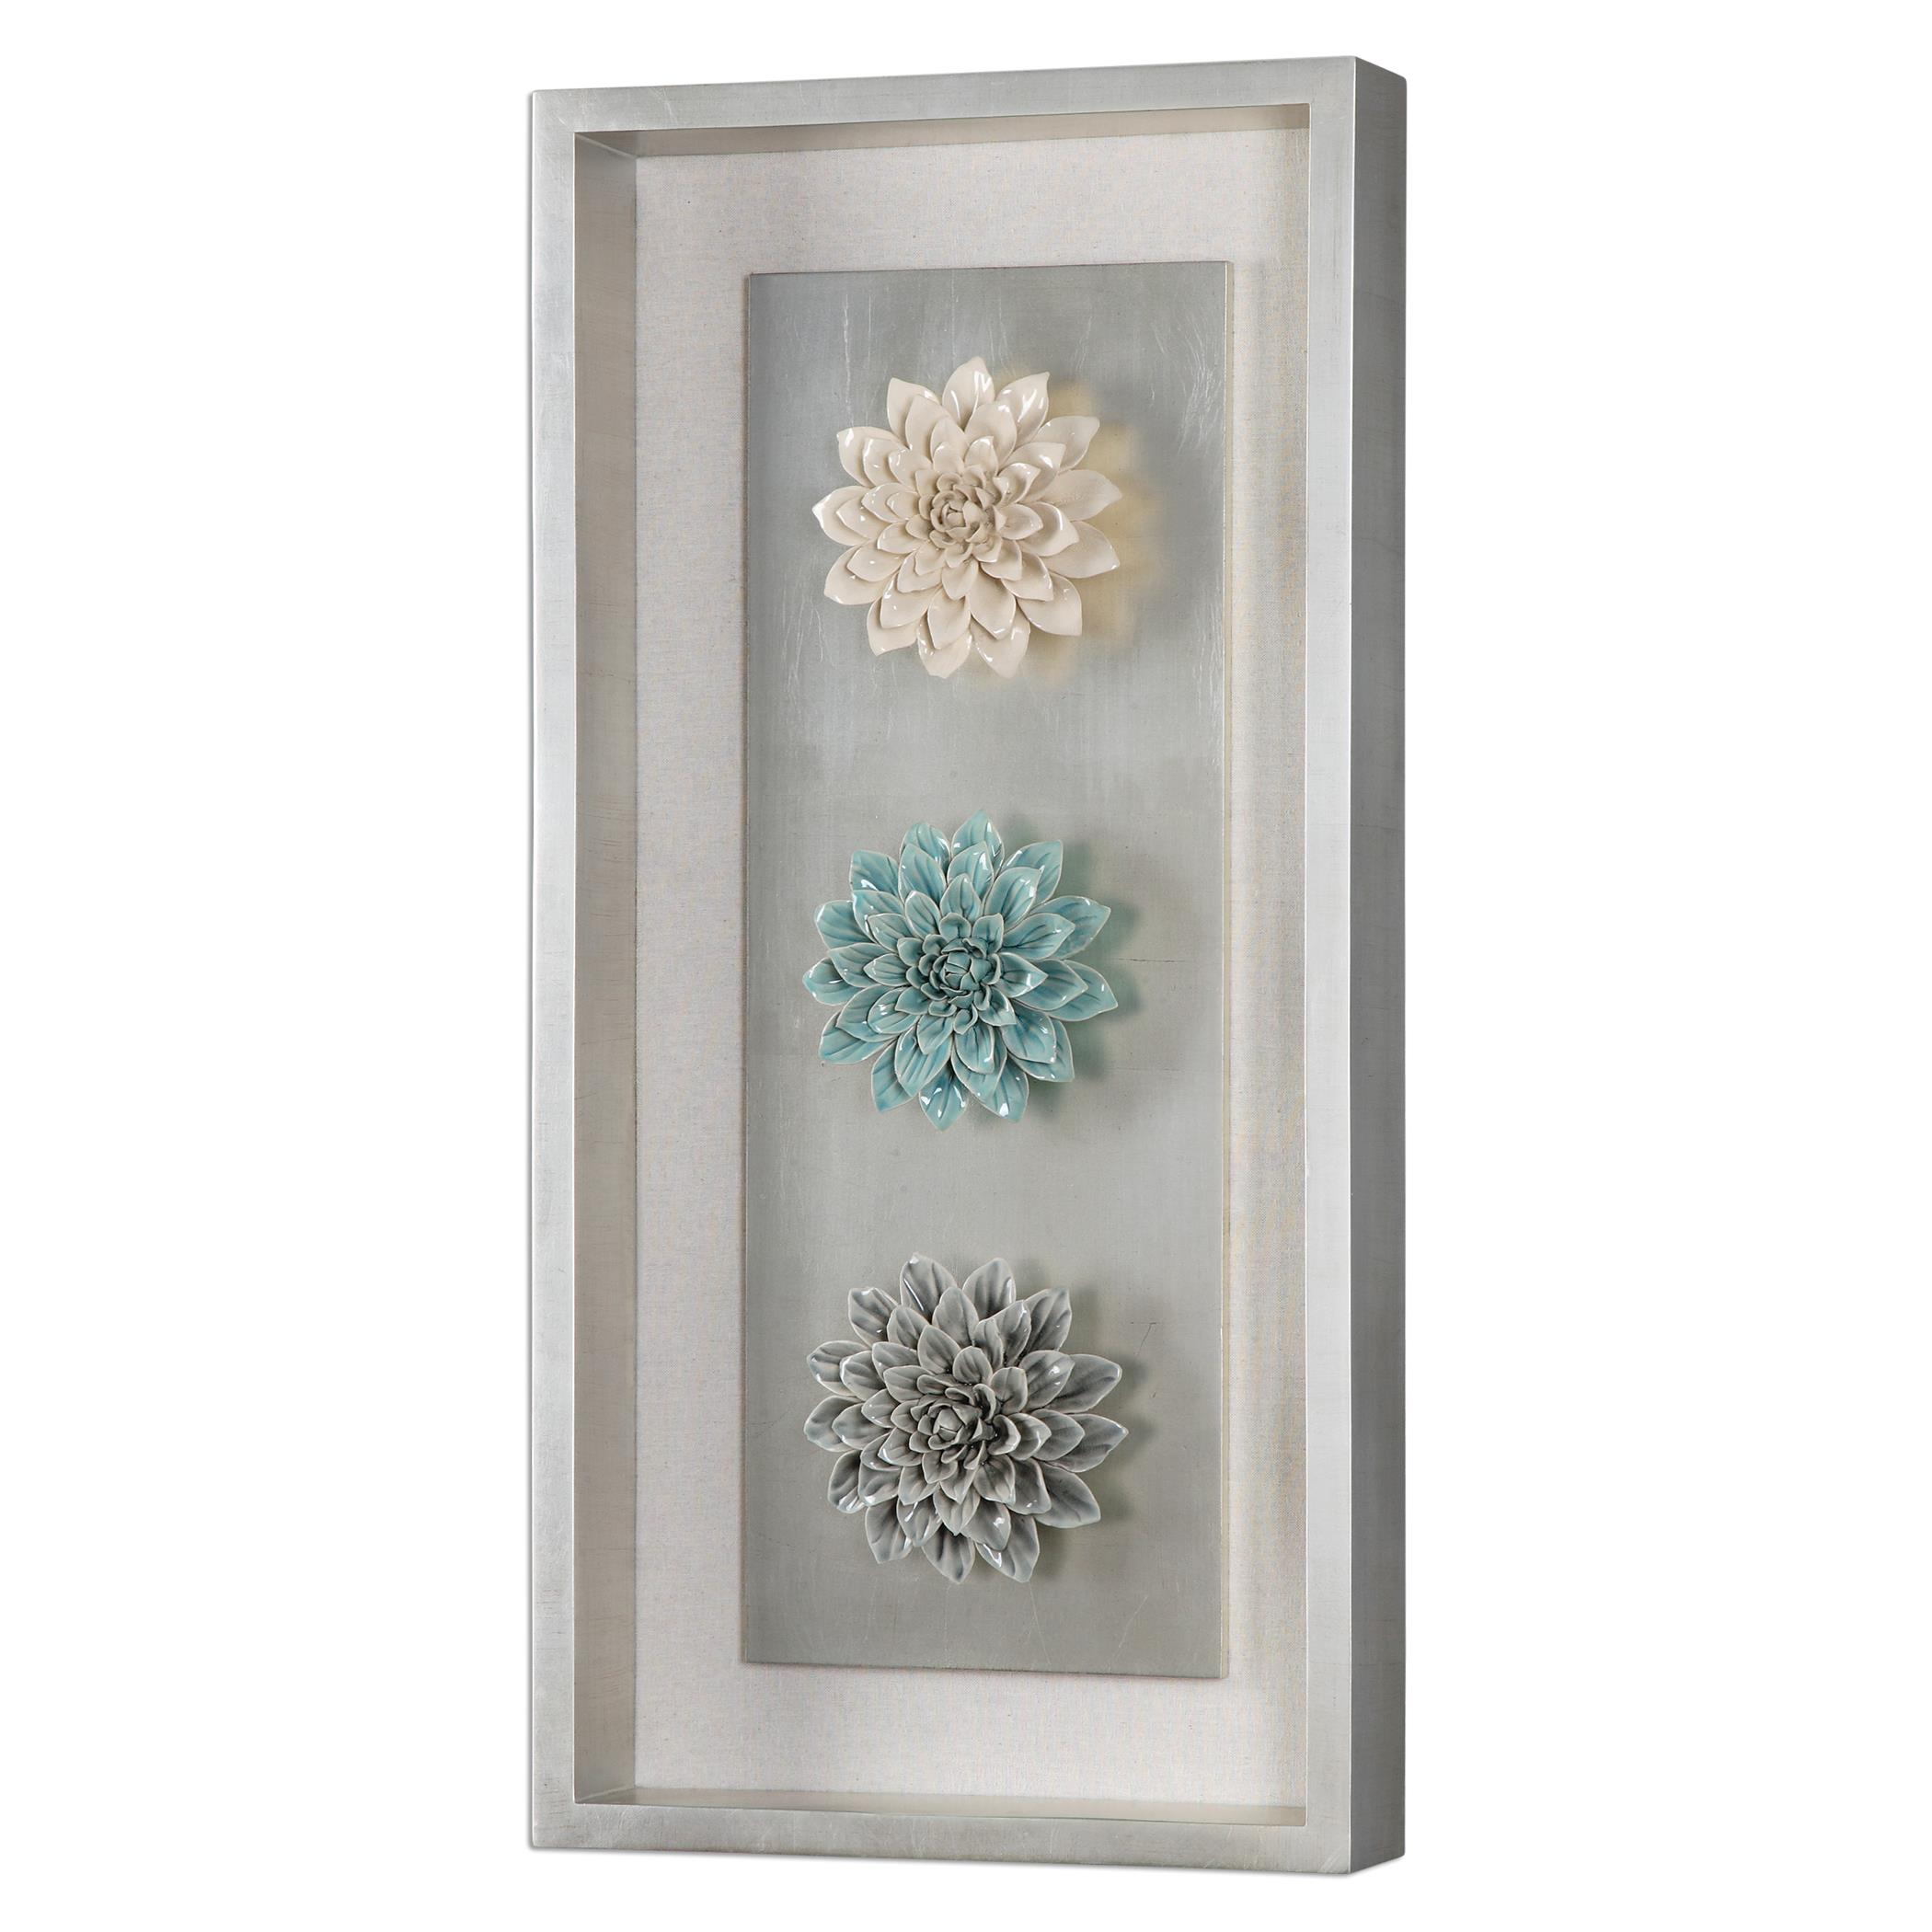 Uttermost Alternative Wall Decor Florenza Framed Wall Art - Item Number: 14553